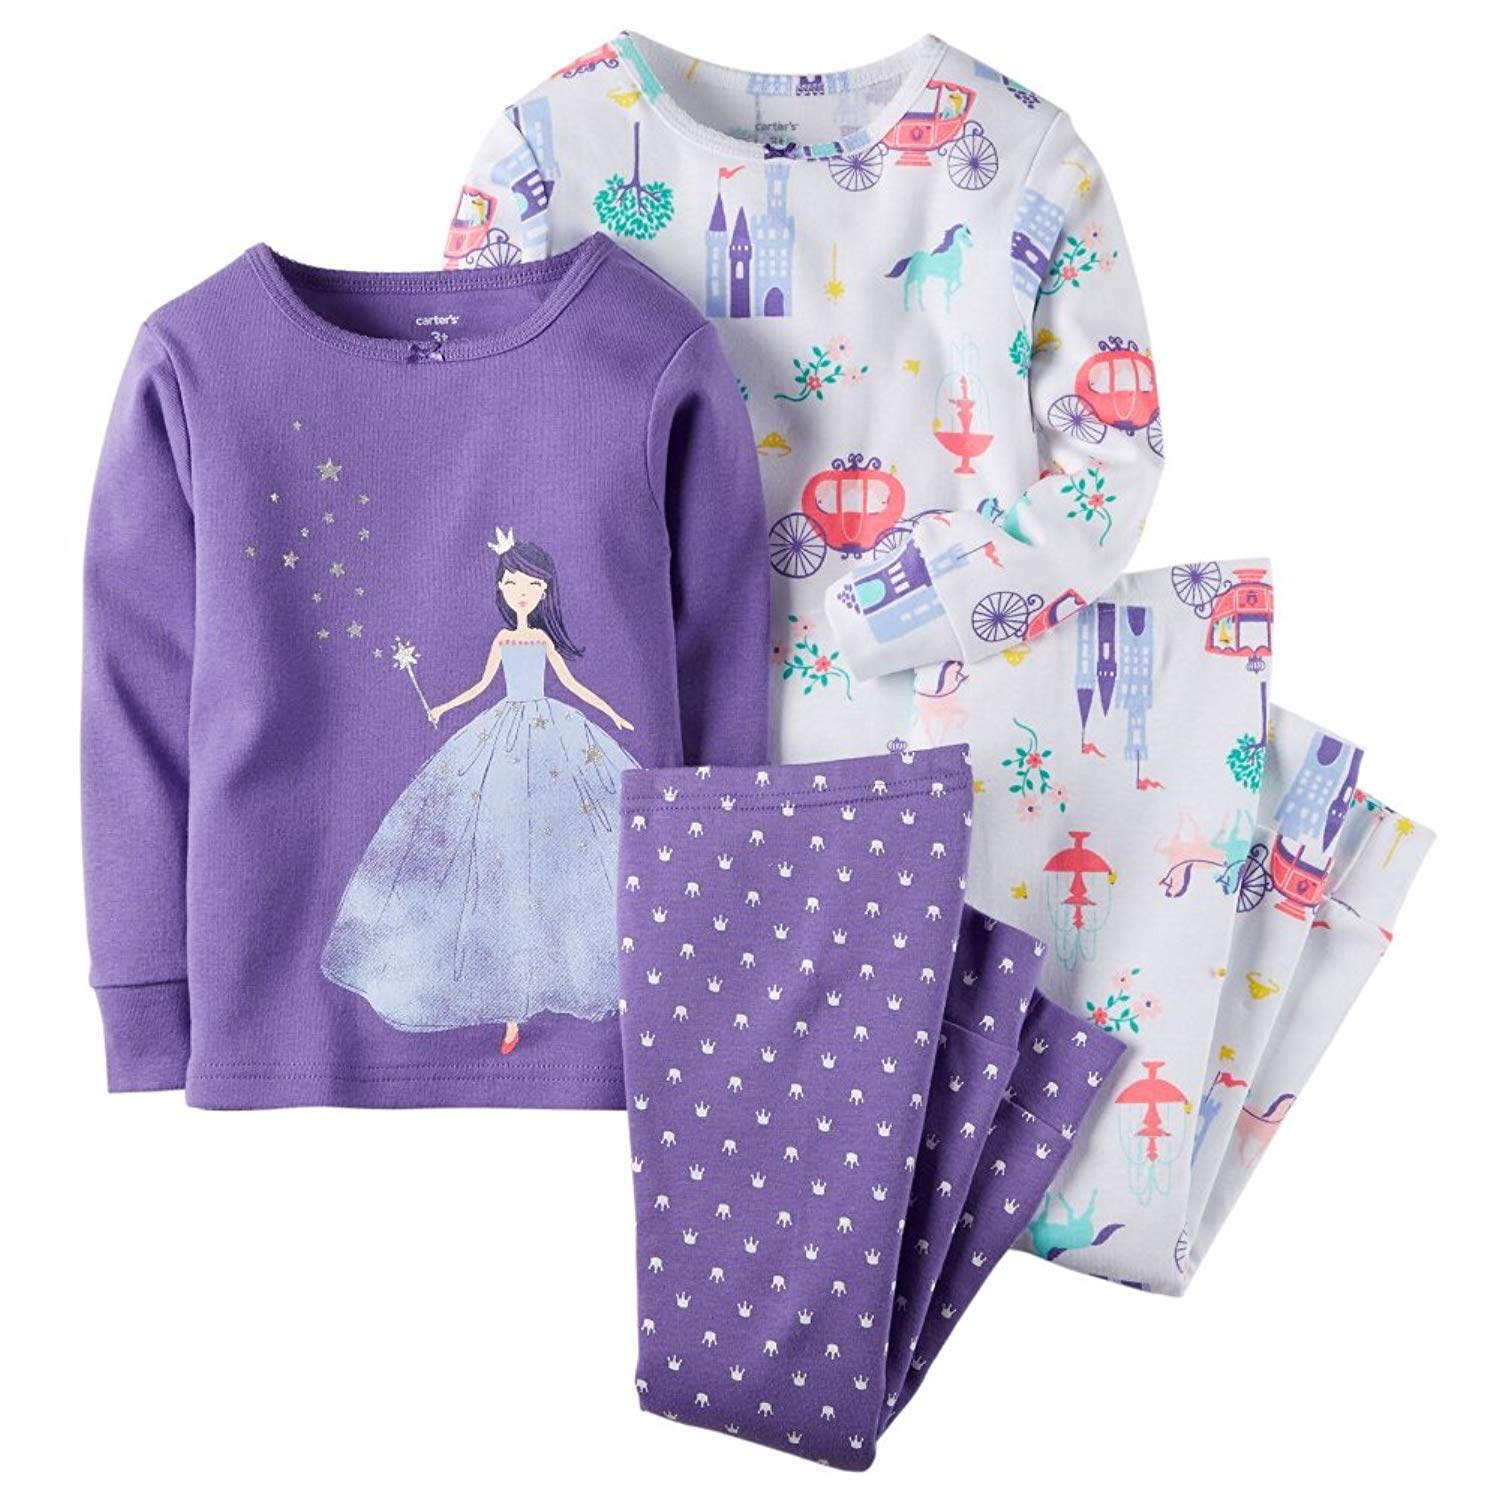 875b1db6cdd5 Cheap Carters Pjs